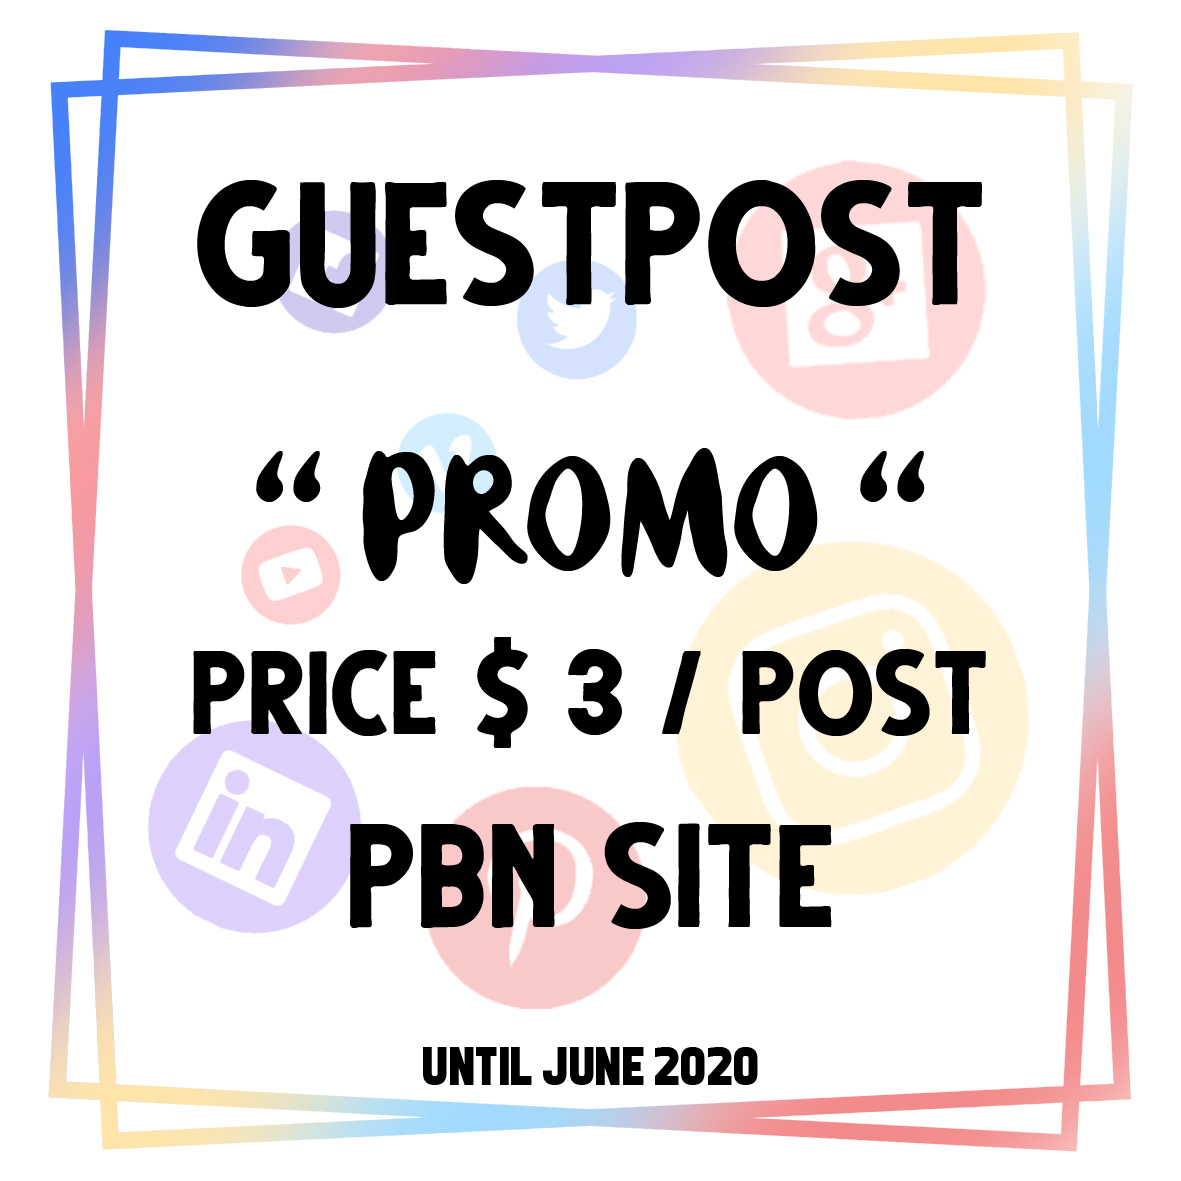 I will provide 1200 PBNs for Guest Post Paid Article Post